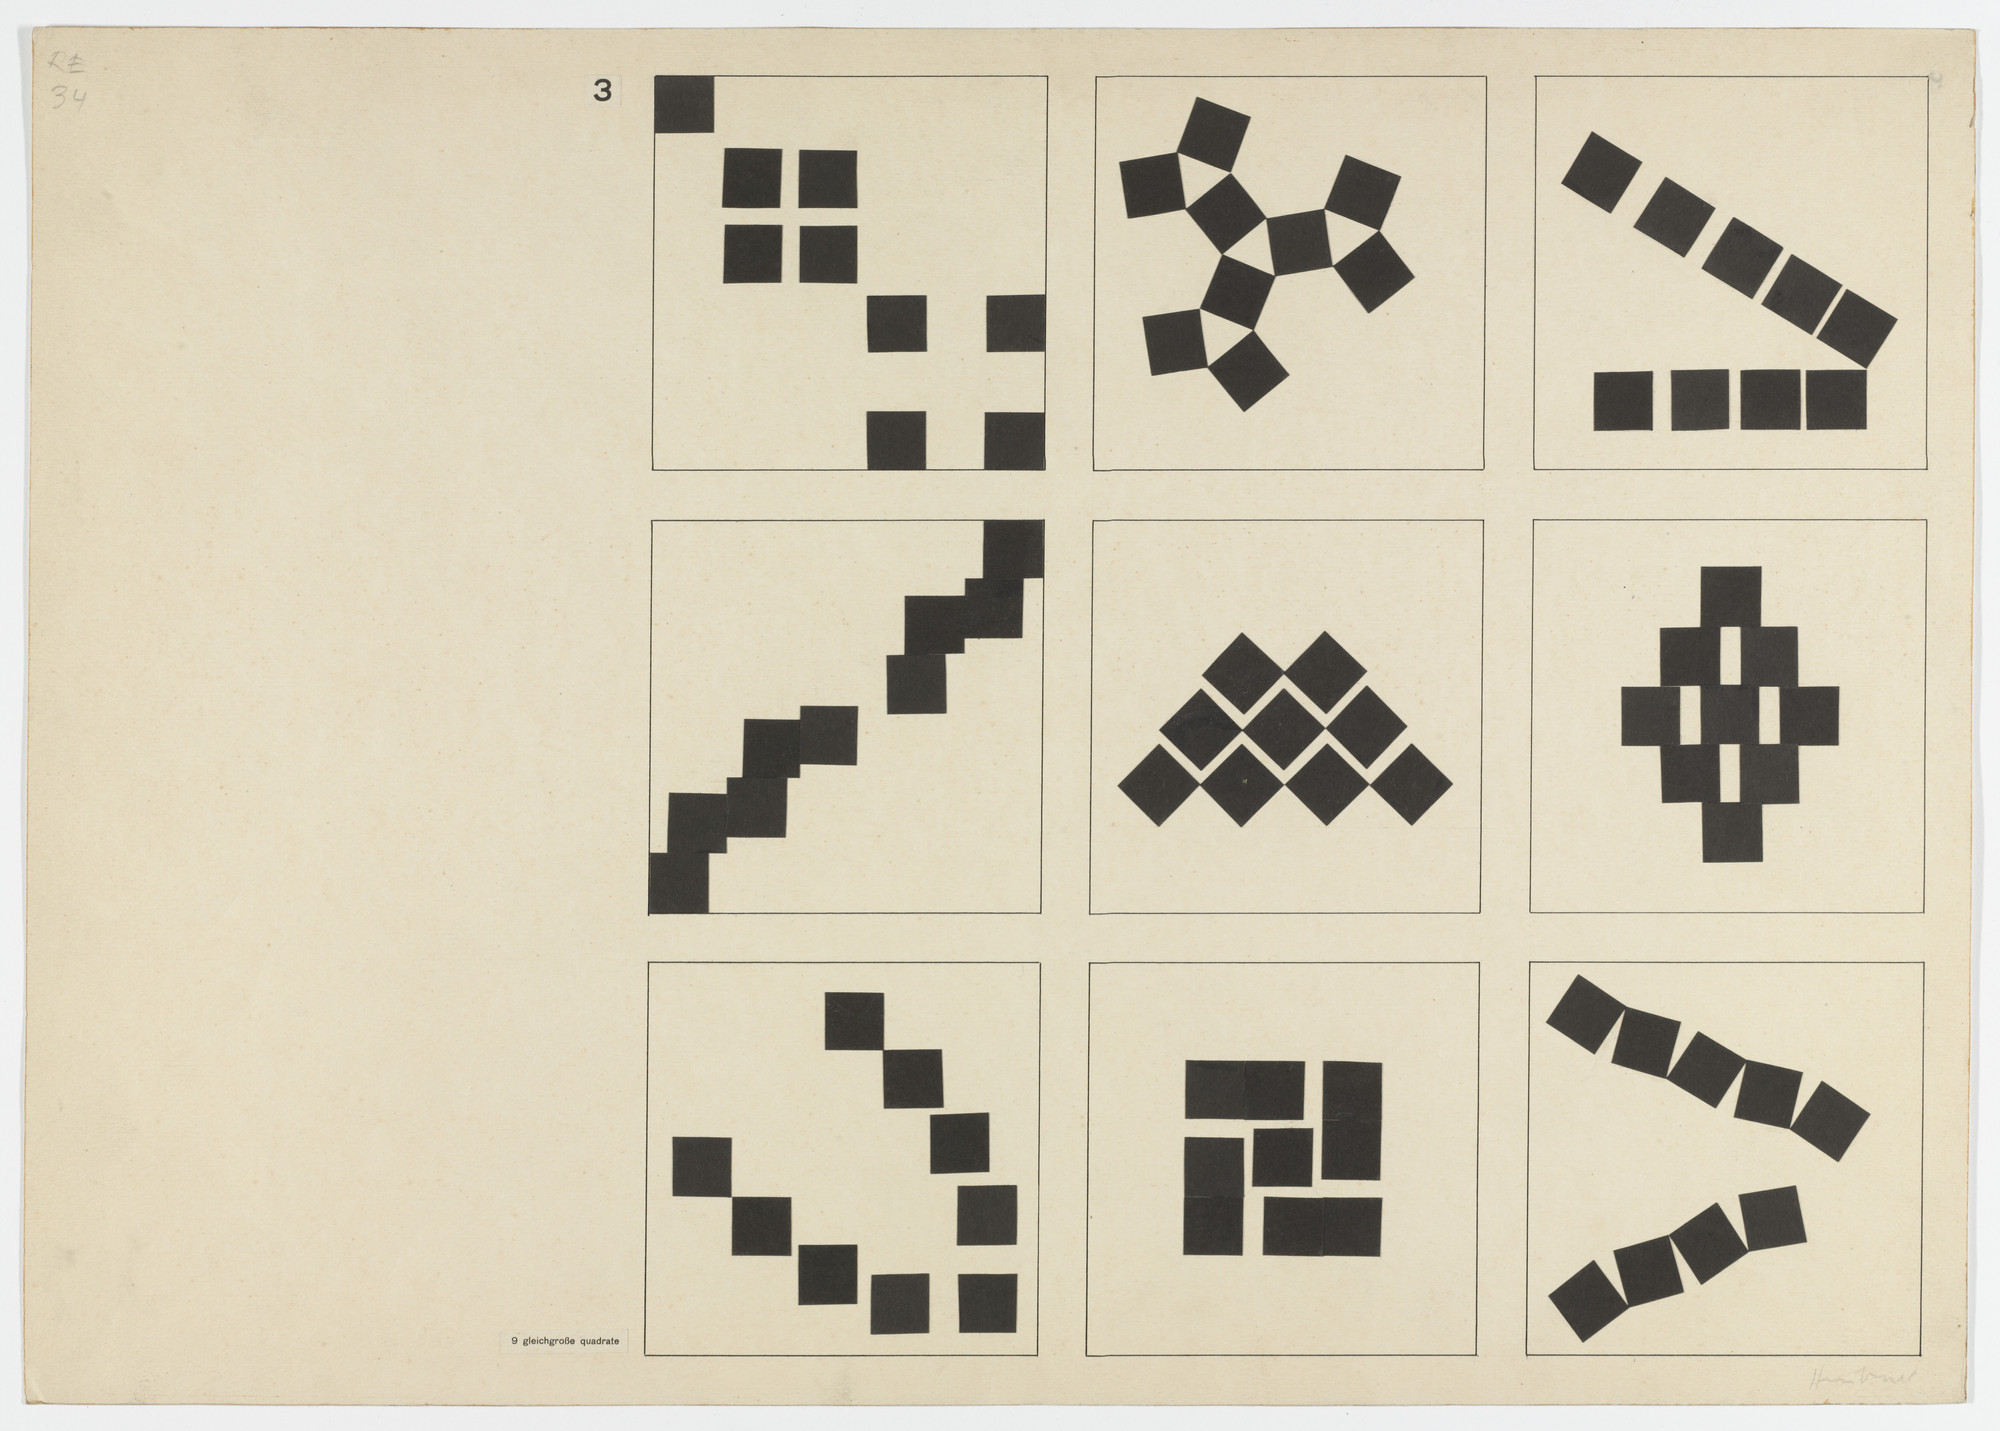 Albrecht Heubner. Studies in Composition. Given: Nine Squares of Equal Size (From Joost Schmidt's Bauhaus Design Course). 1930–1933